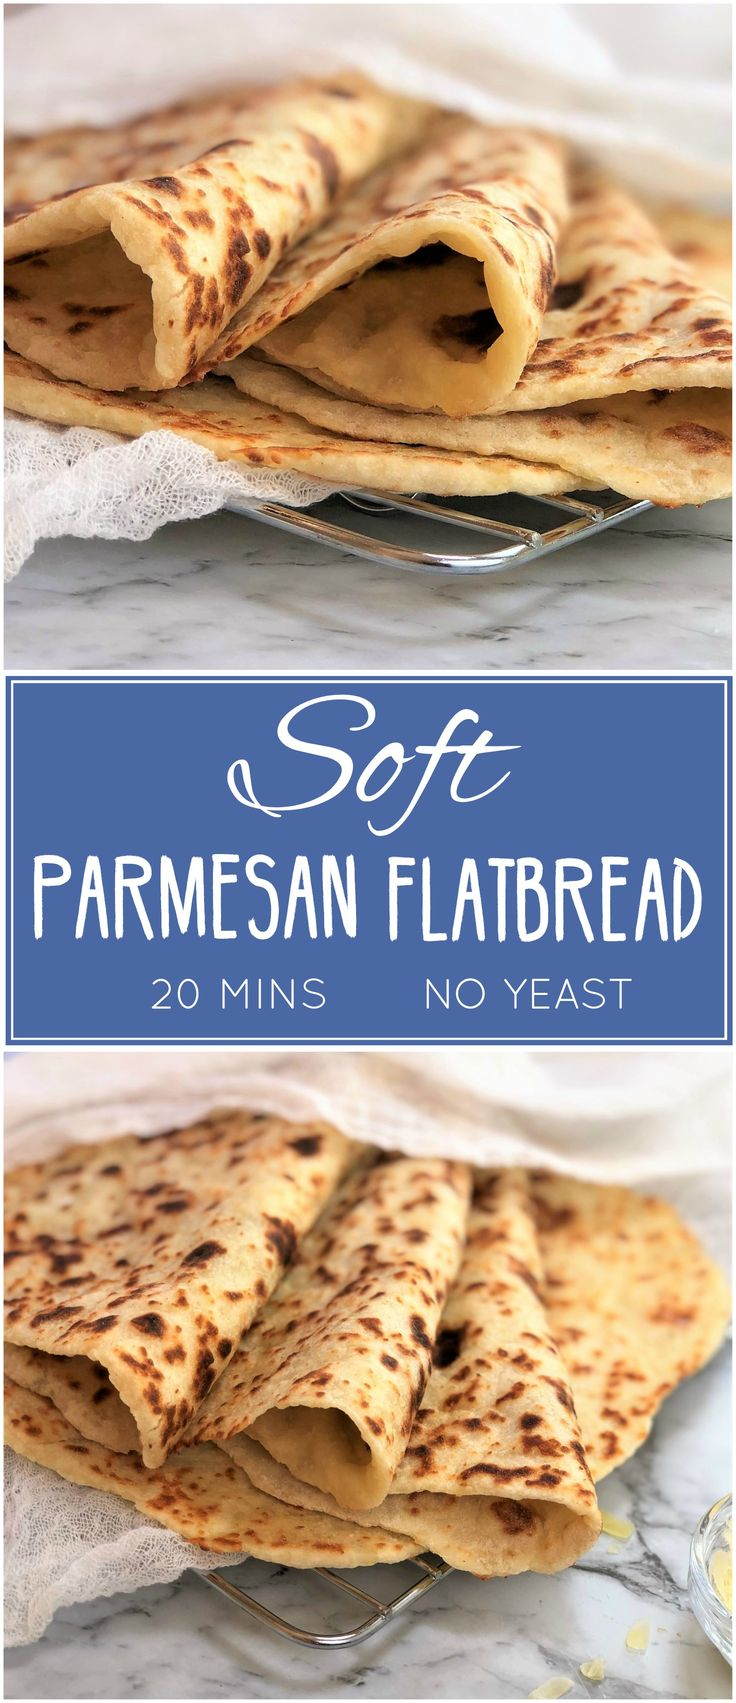 Soft parmesan flatbread - no yeast & all done in 20 mins